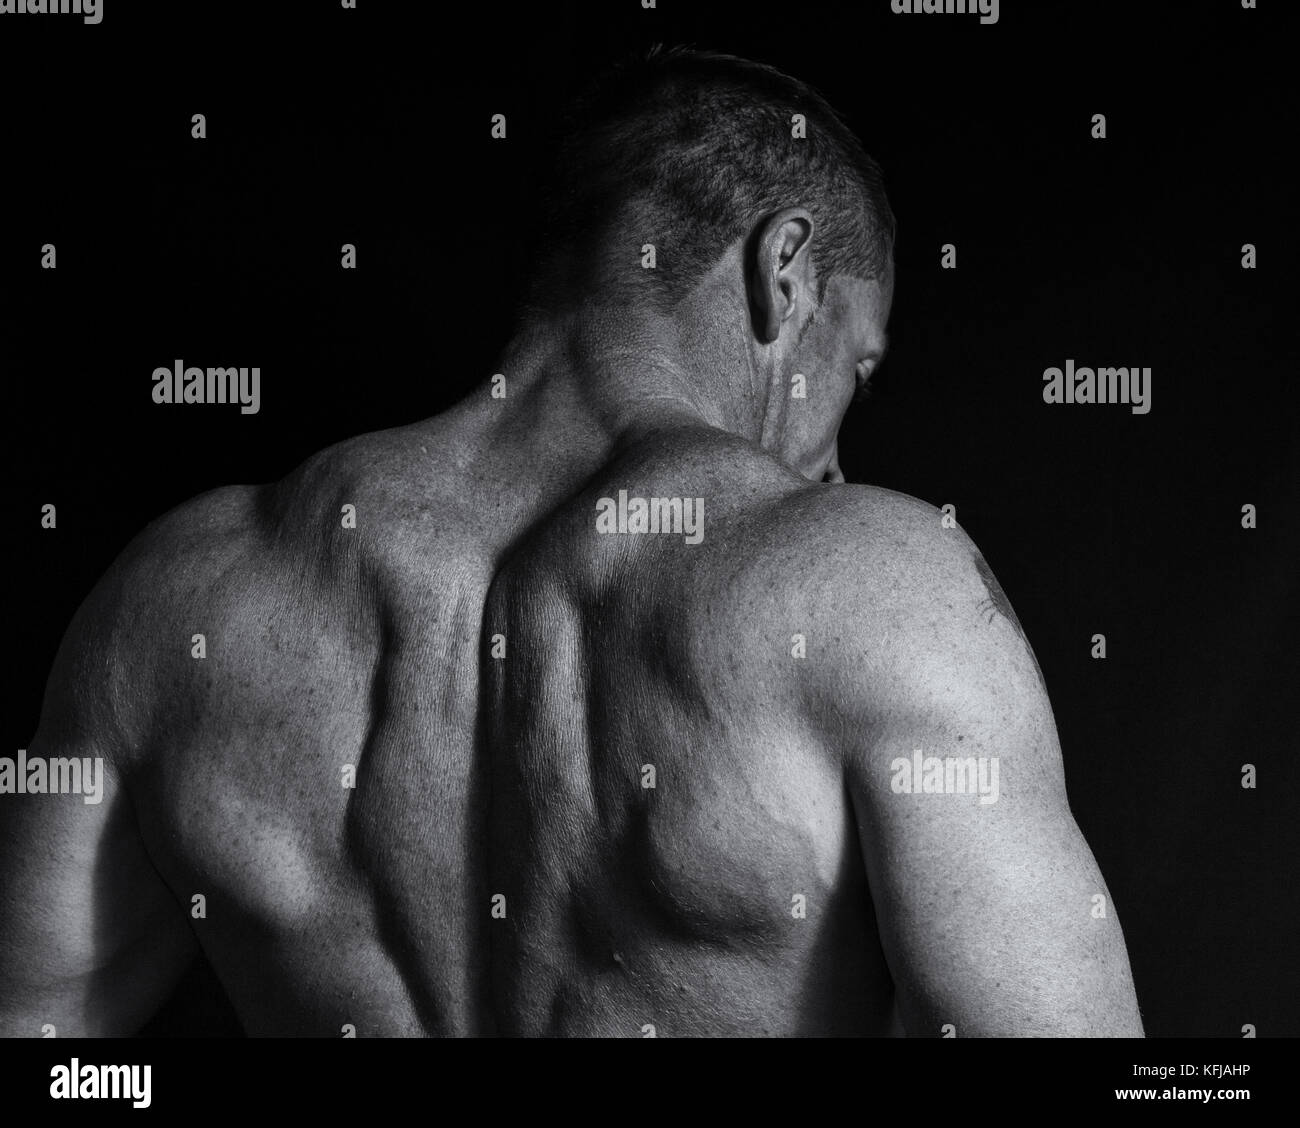 Body Builder High Resolution Stock Photography And Images Alamy